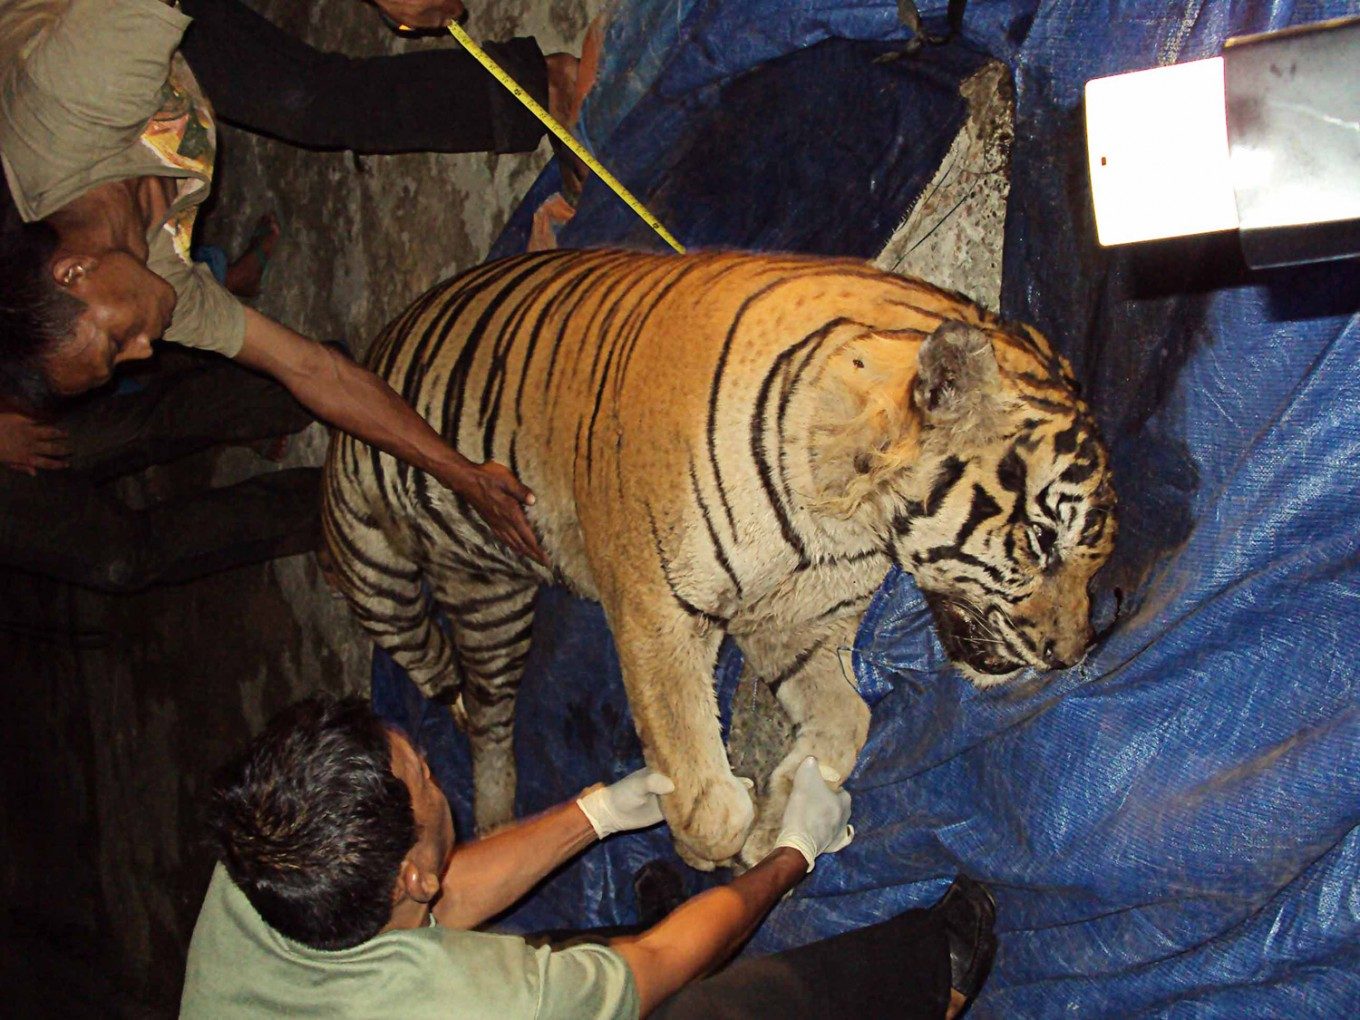 Tiger skin traders get four years in prison